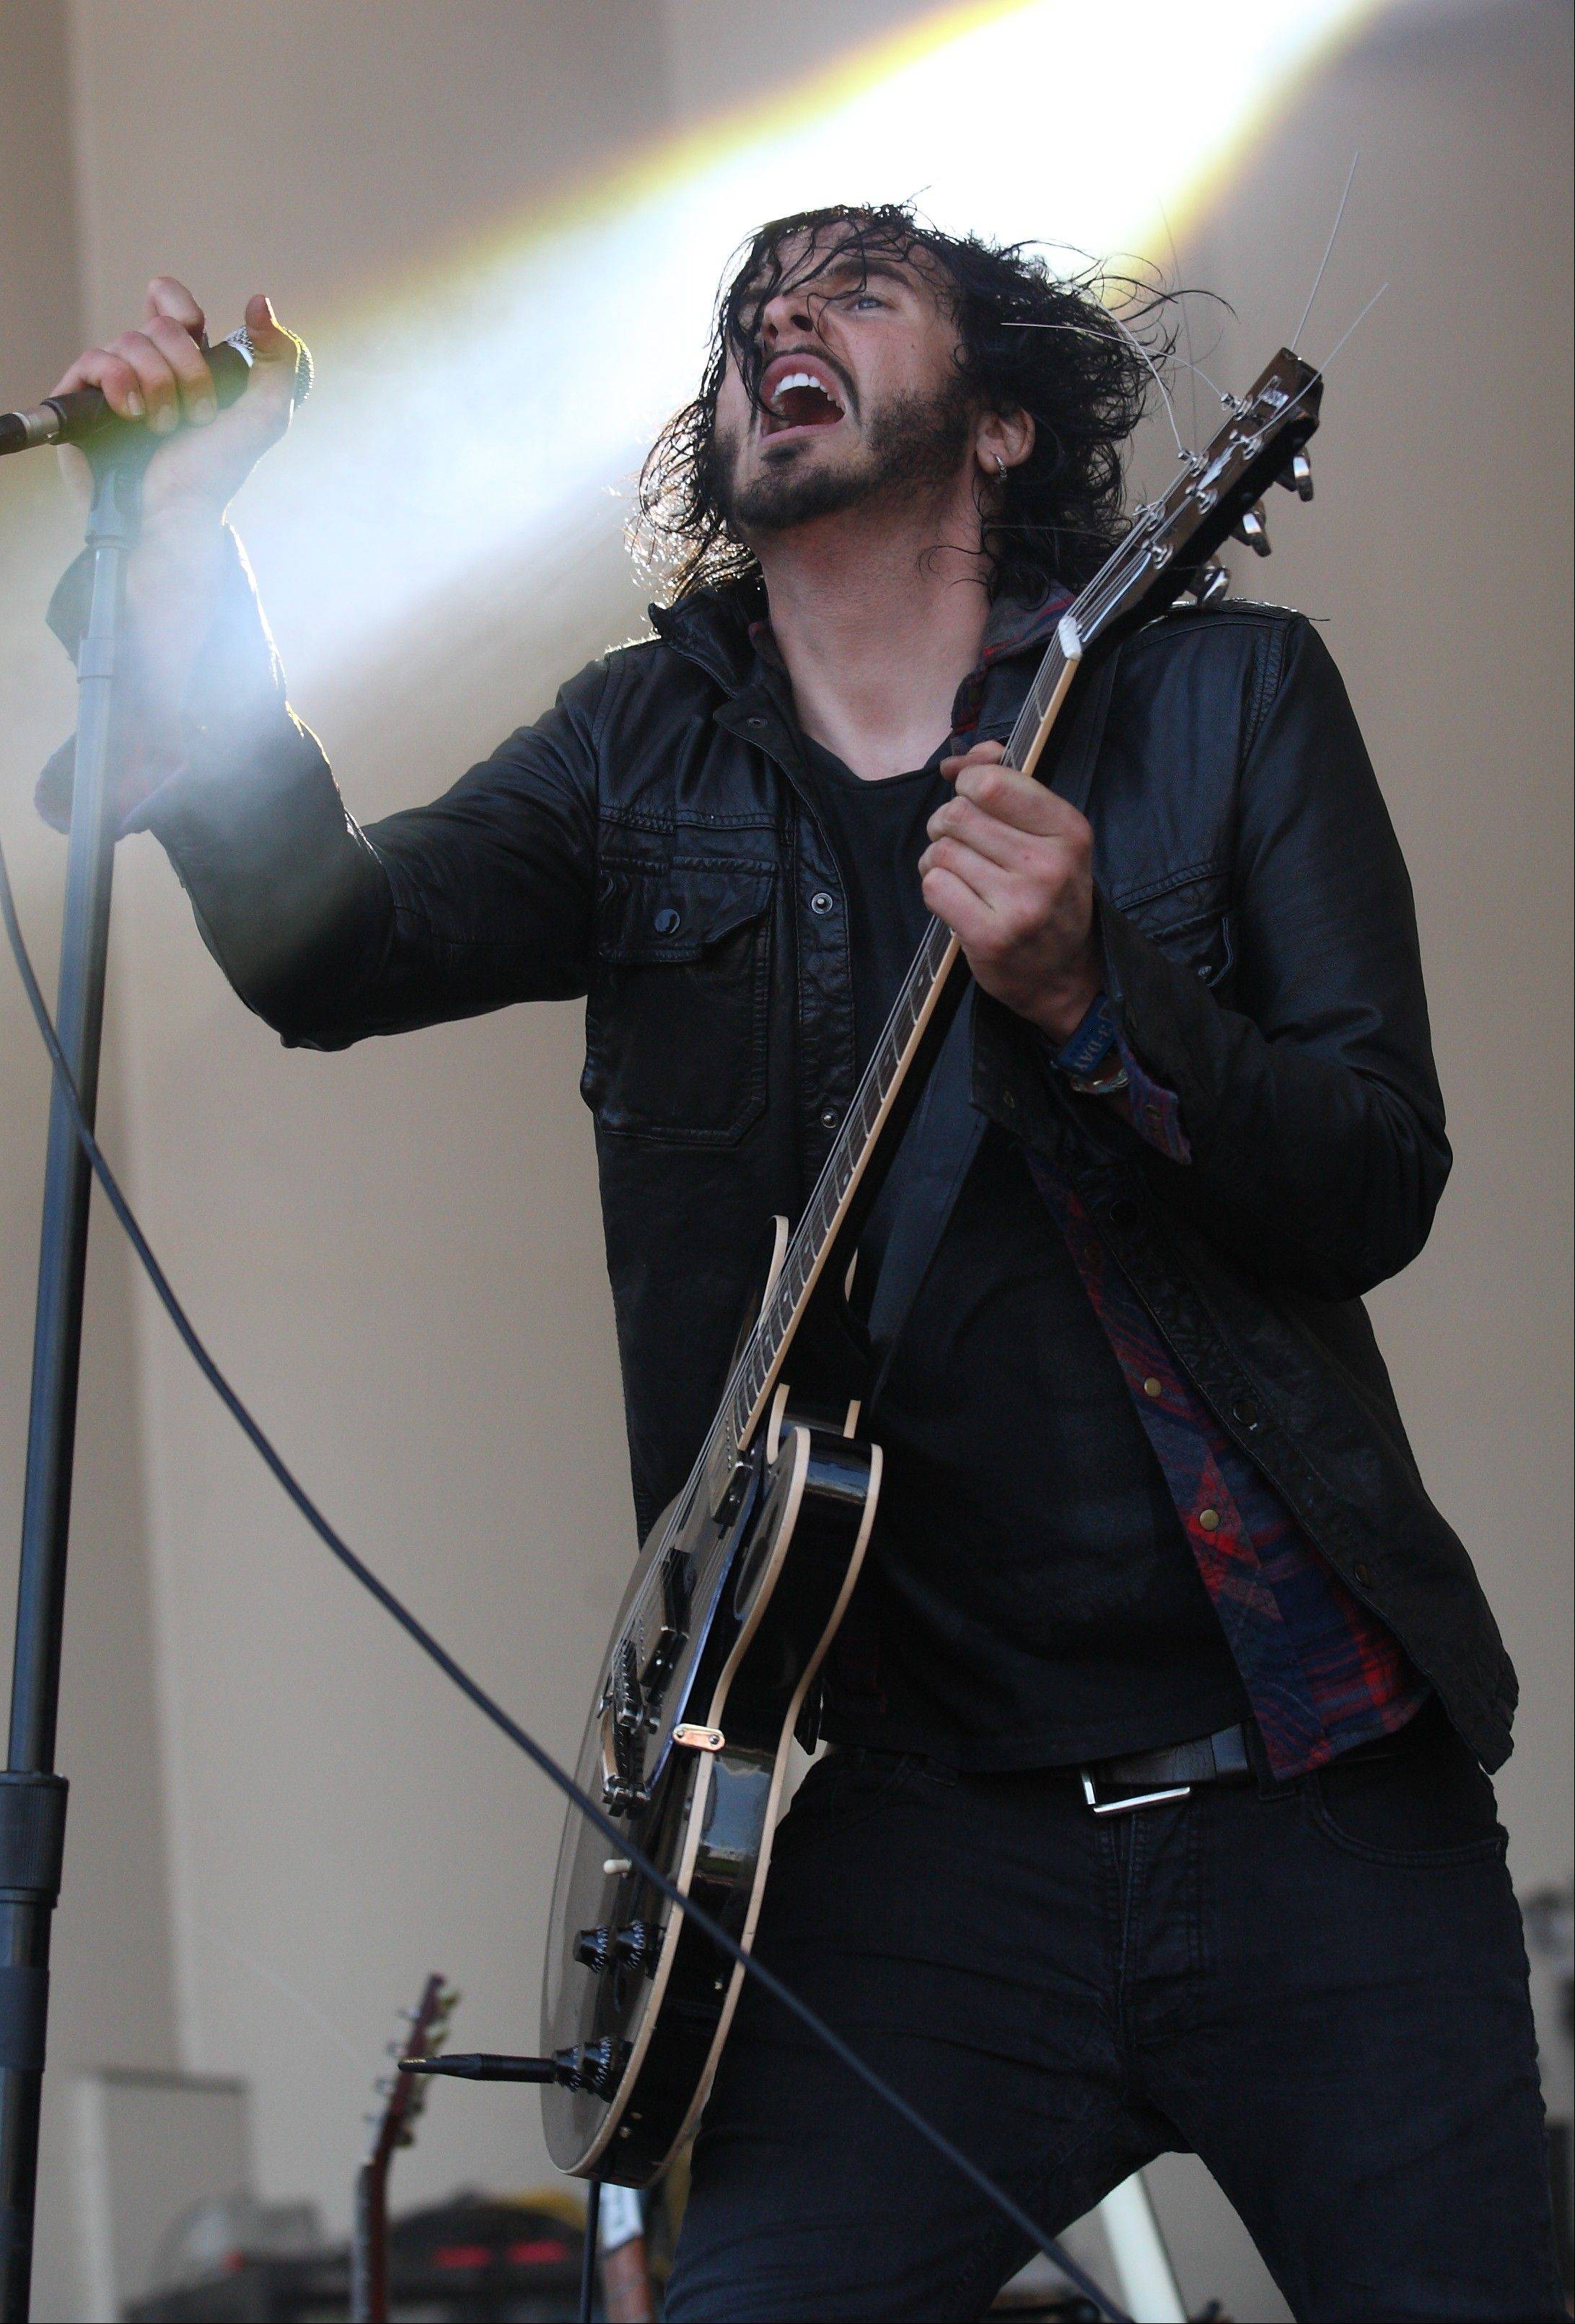 Jordan Cook of the Band Reignwolf performs on day 2 of Lollapalooza 2013 at Grant Park on Saturday, Aug.3, 2013 in Chicago.